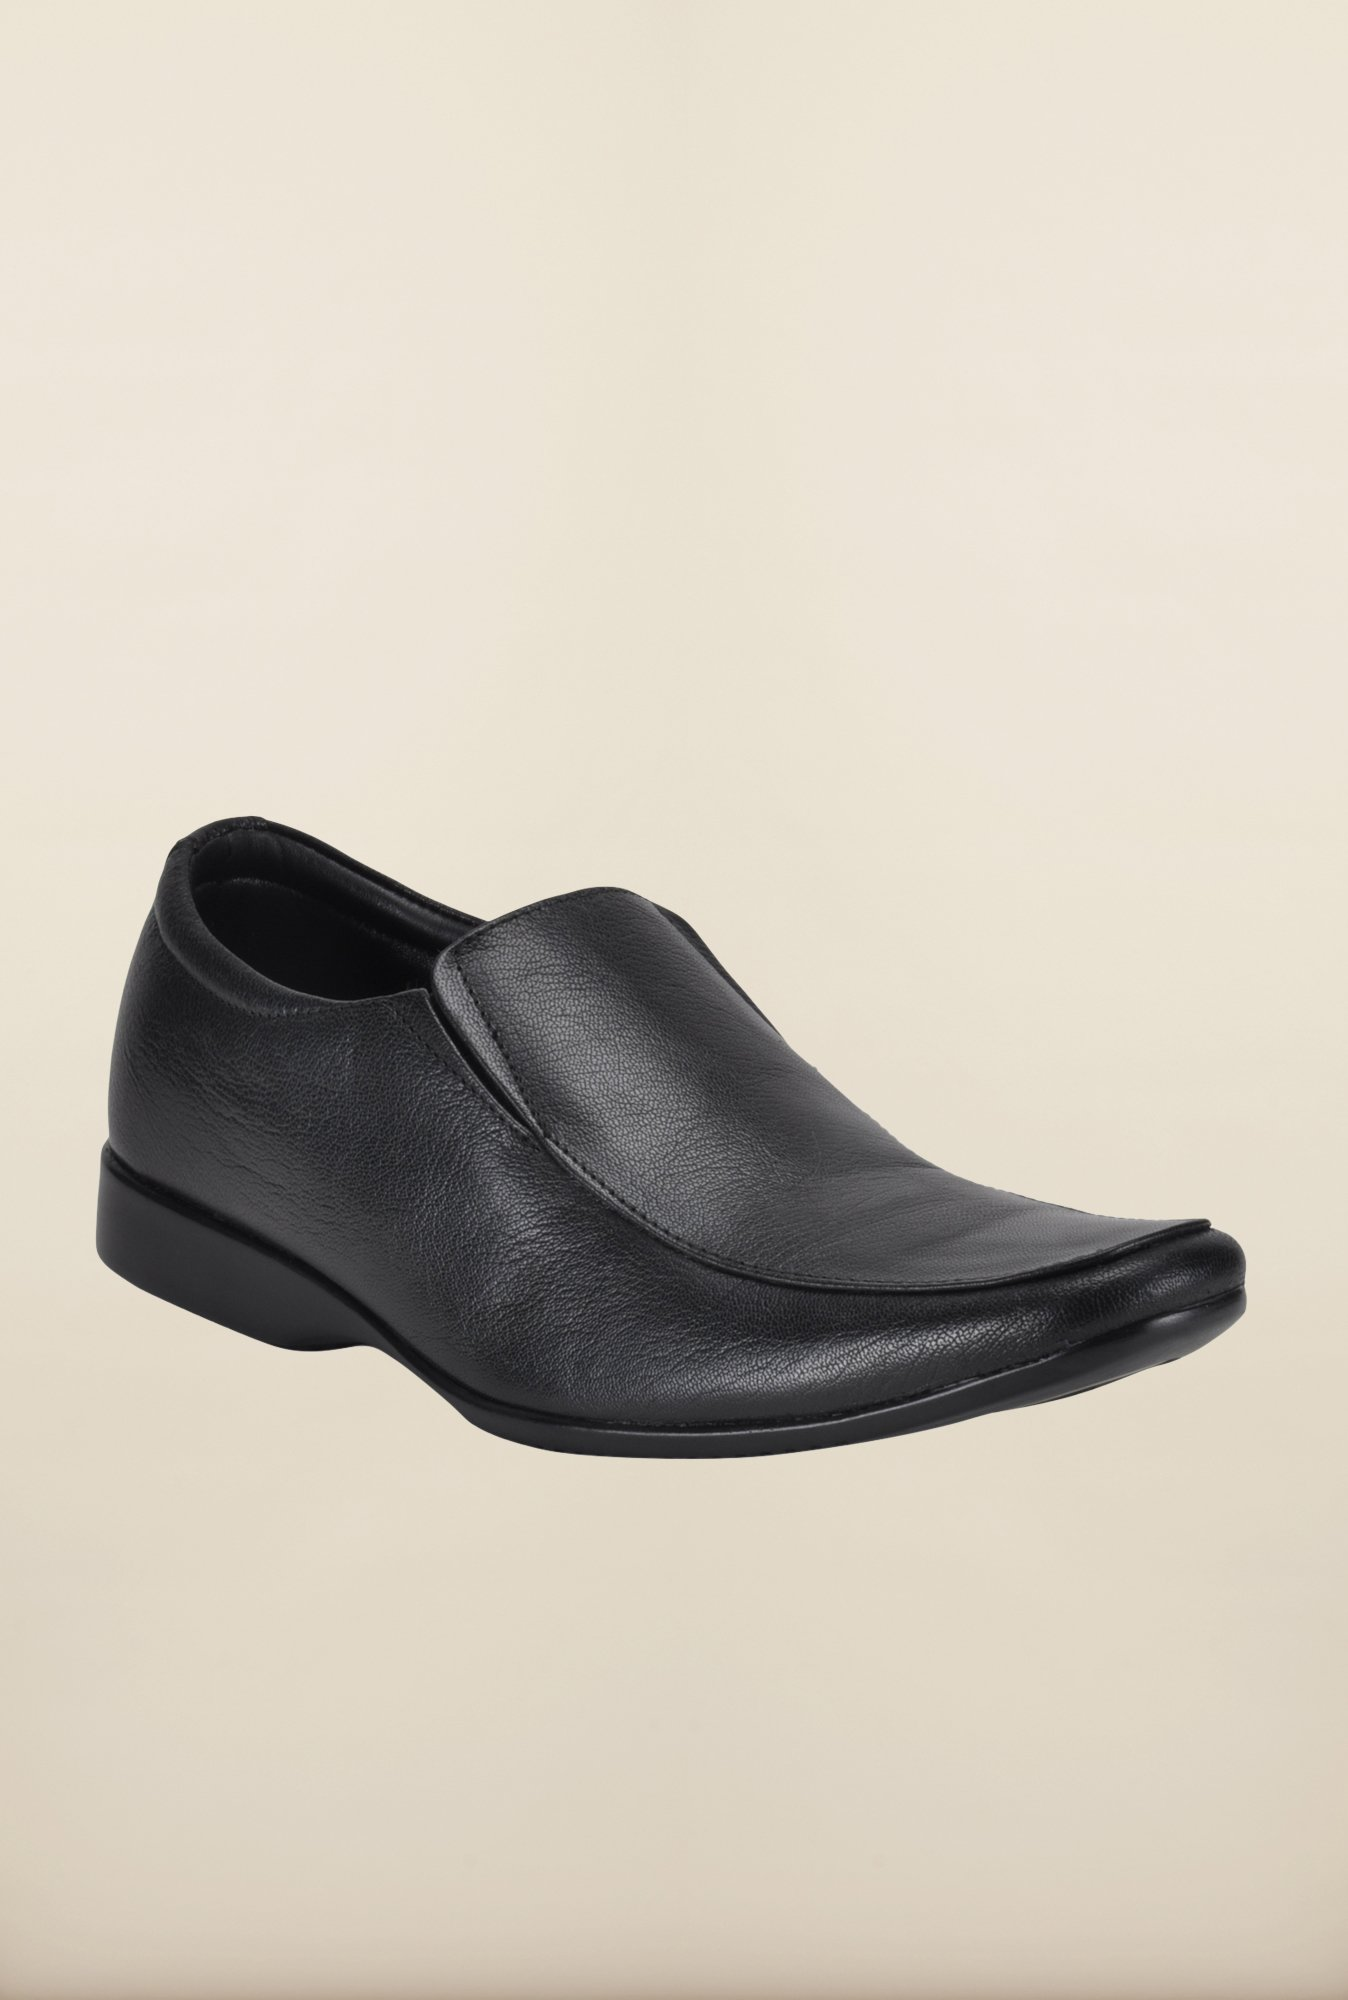 Franco Leone Black Formal Slip-Ons Shoes